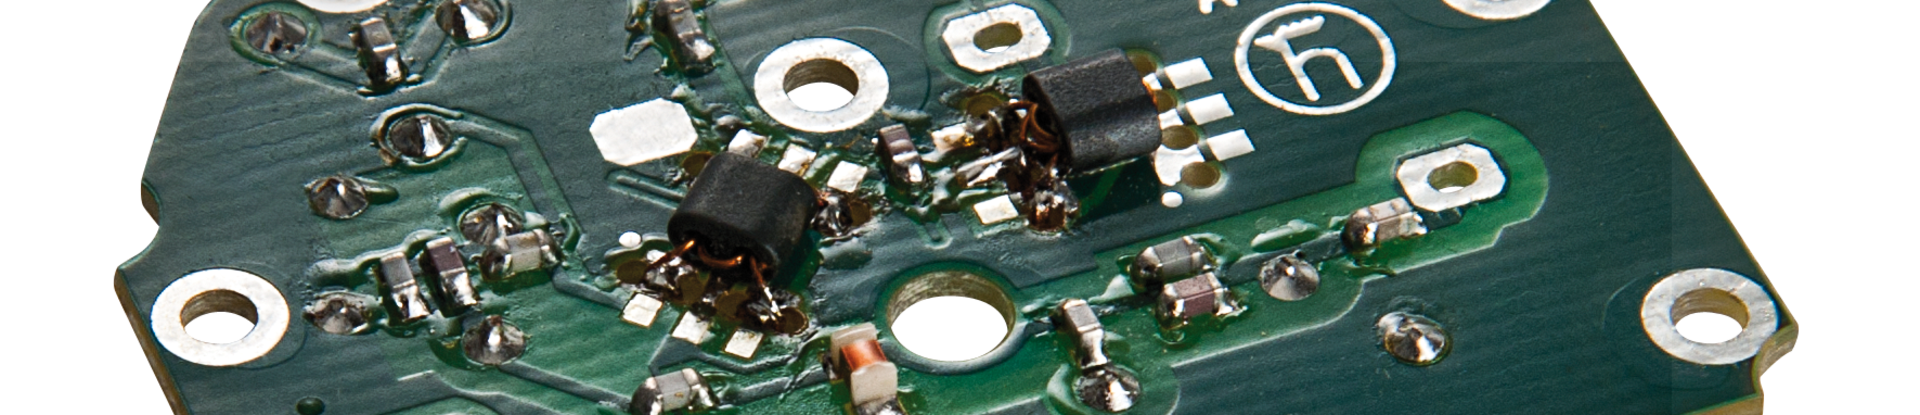 St The Molding Competence Printed Circuit Board Assembly Wiring In Conjunction With Manual Winding Technology